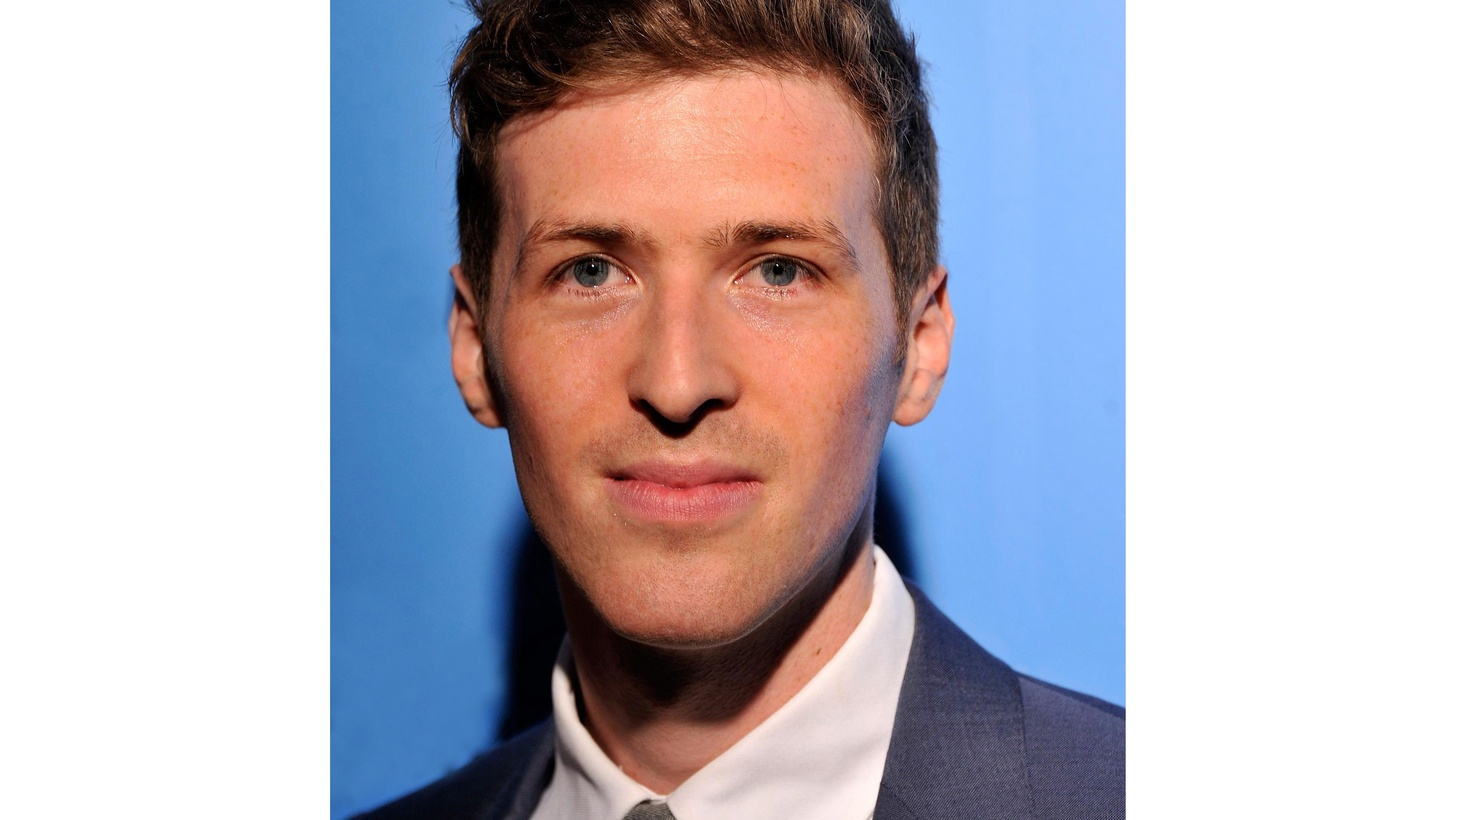 """""""Blueprint"""" director Daryl Wein discusses filmmaking from an African American perspective as a white filmmaker."""